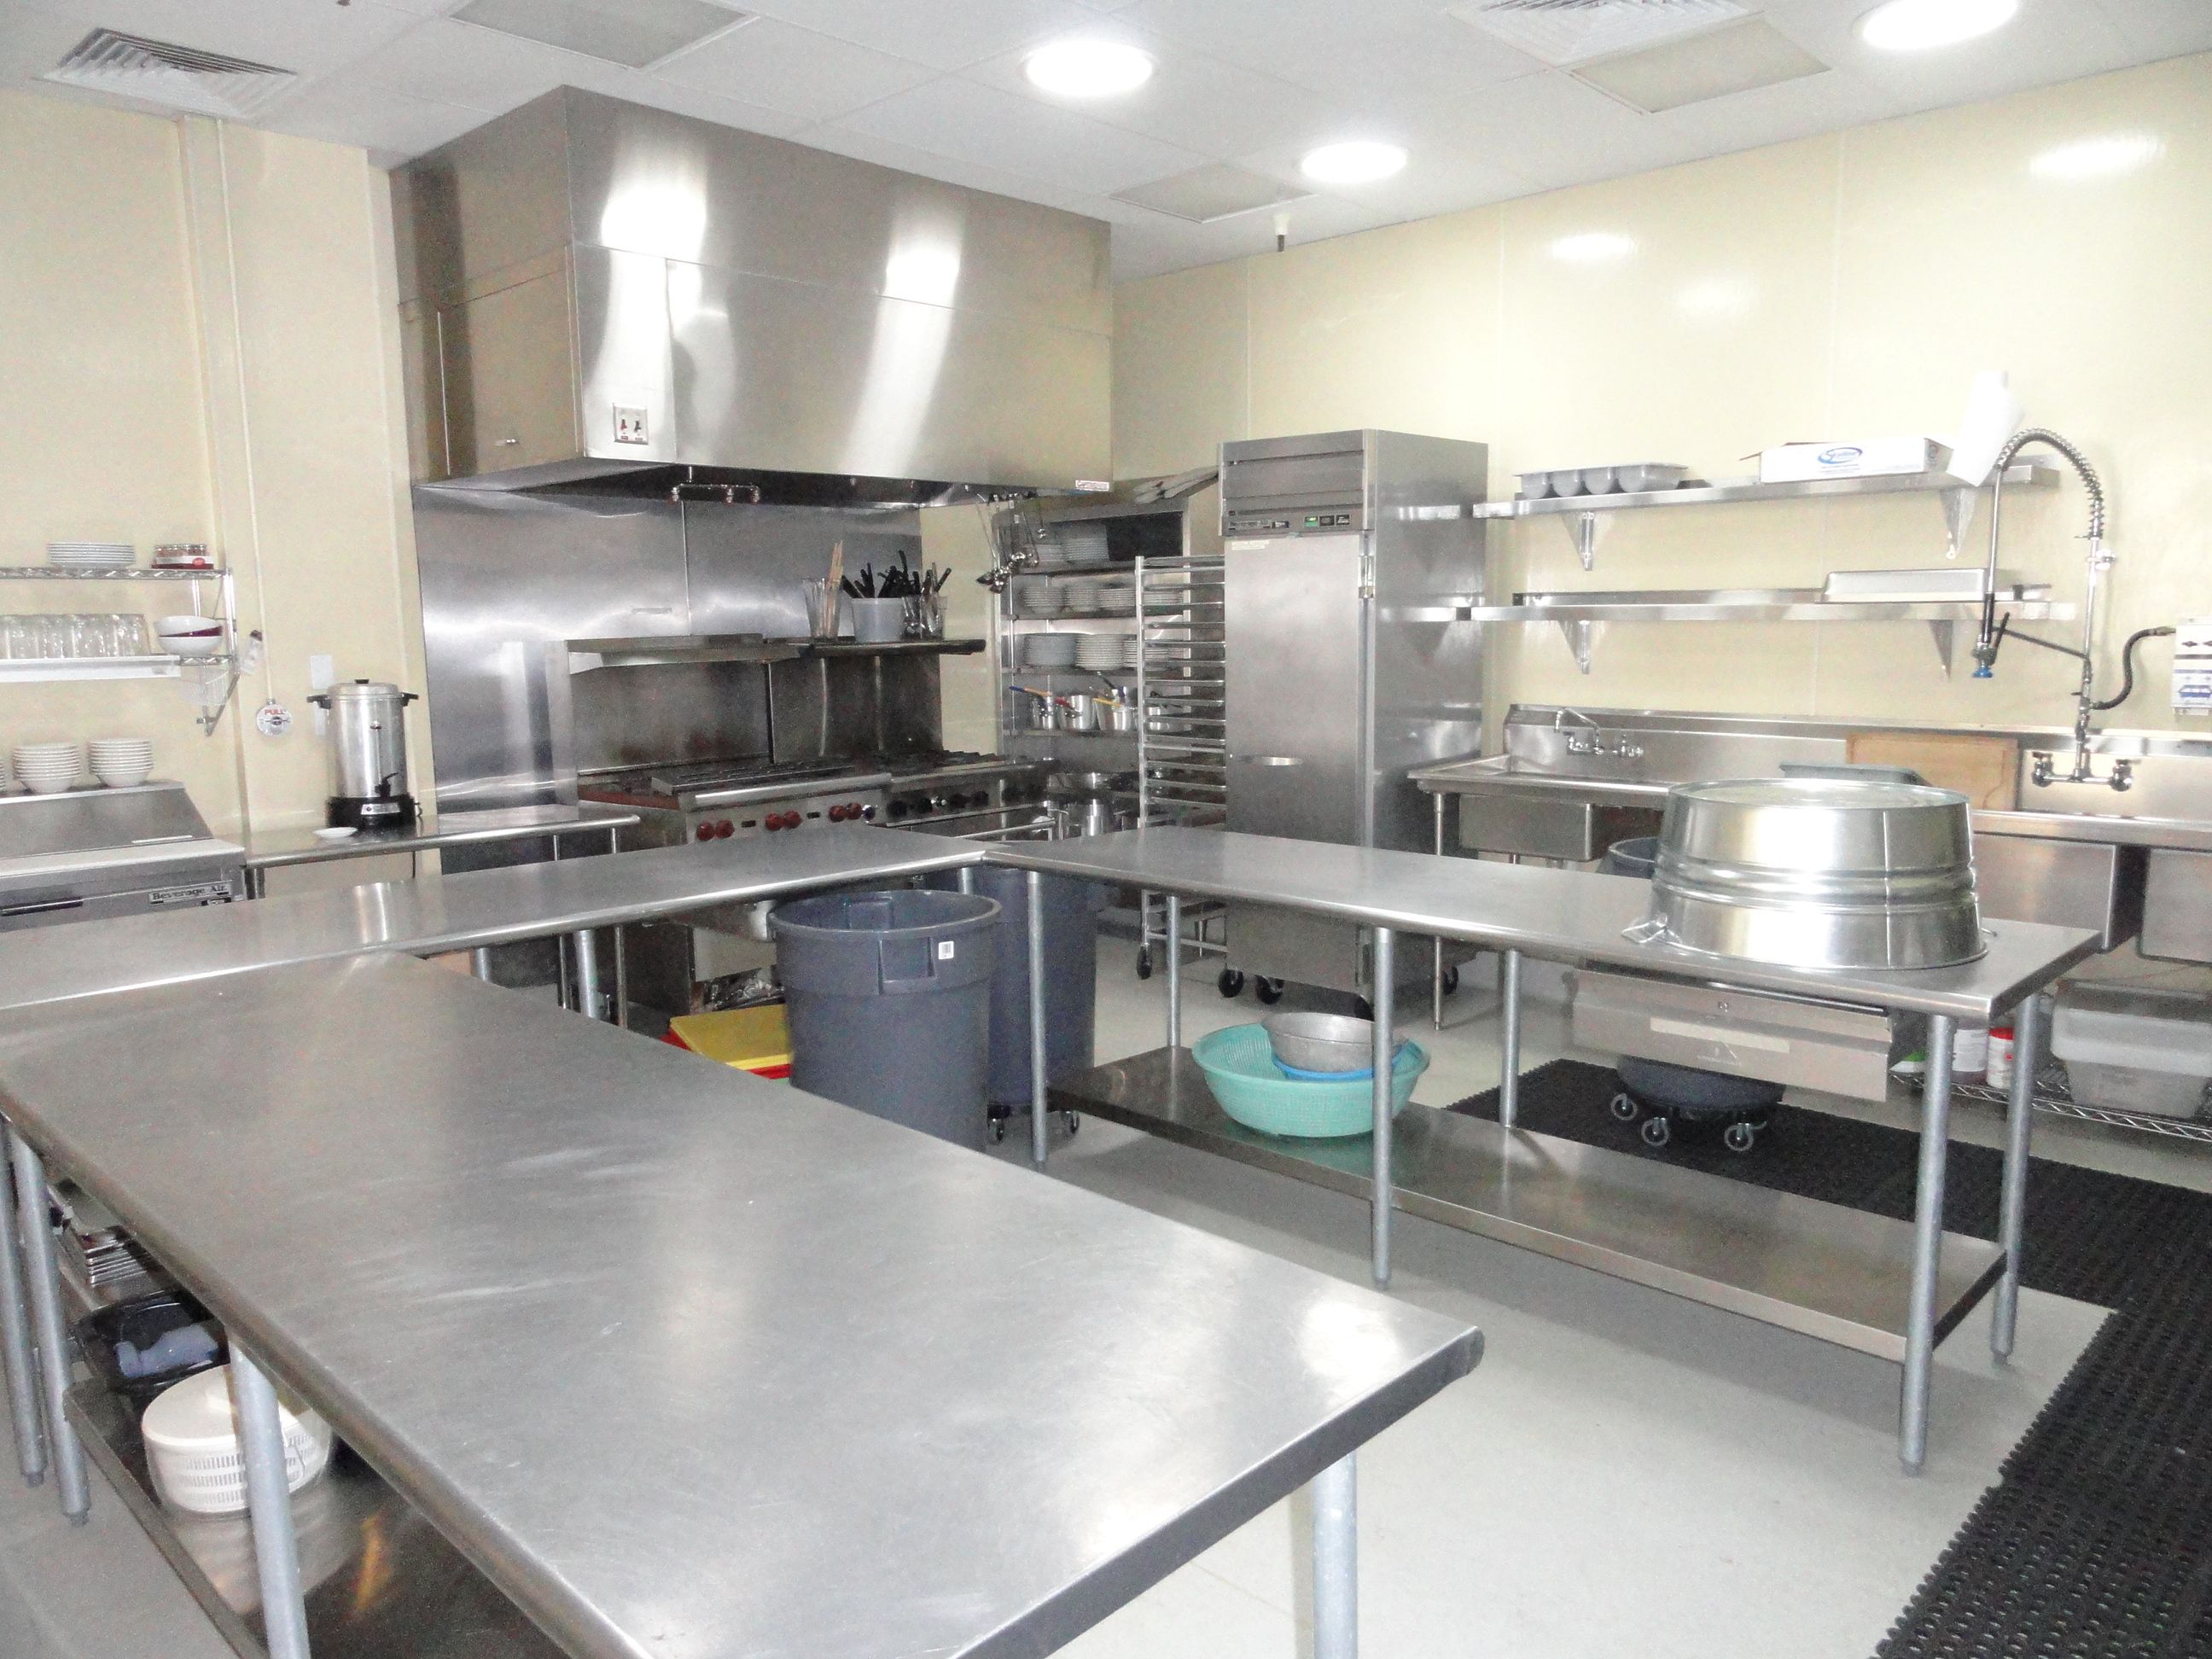 12 excellent small commercial kitchen equipment digital picture ideas house details - Commercial kitchen designer ...